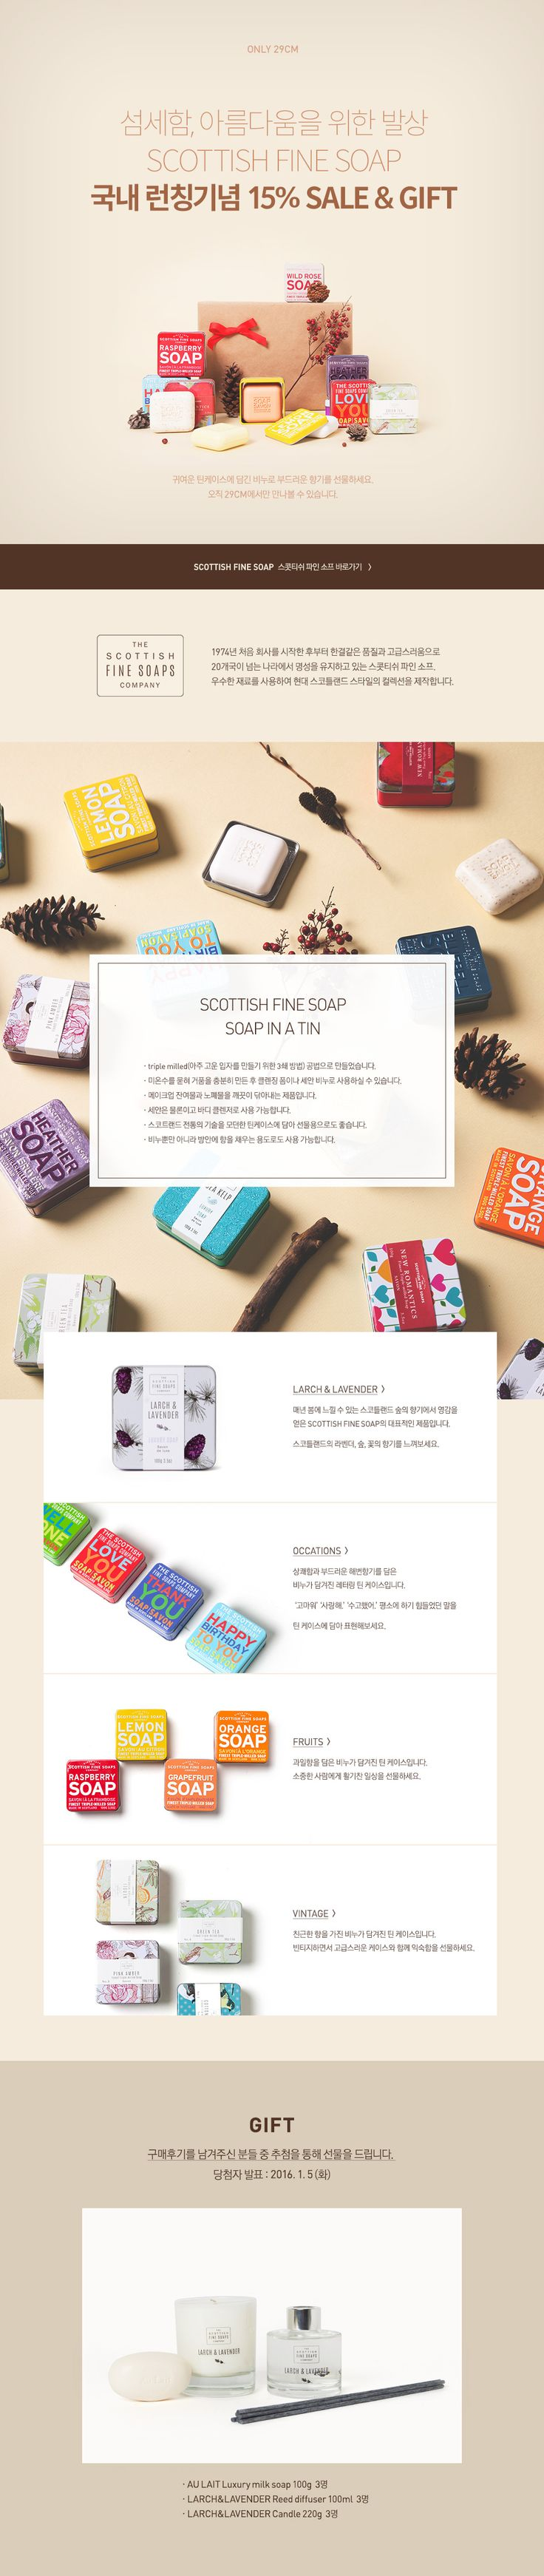 [ONLY 29CM] SCOTTISH FINE SOAP 국내 런칭기념 15%할인&GIFT